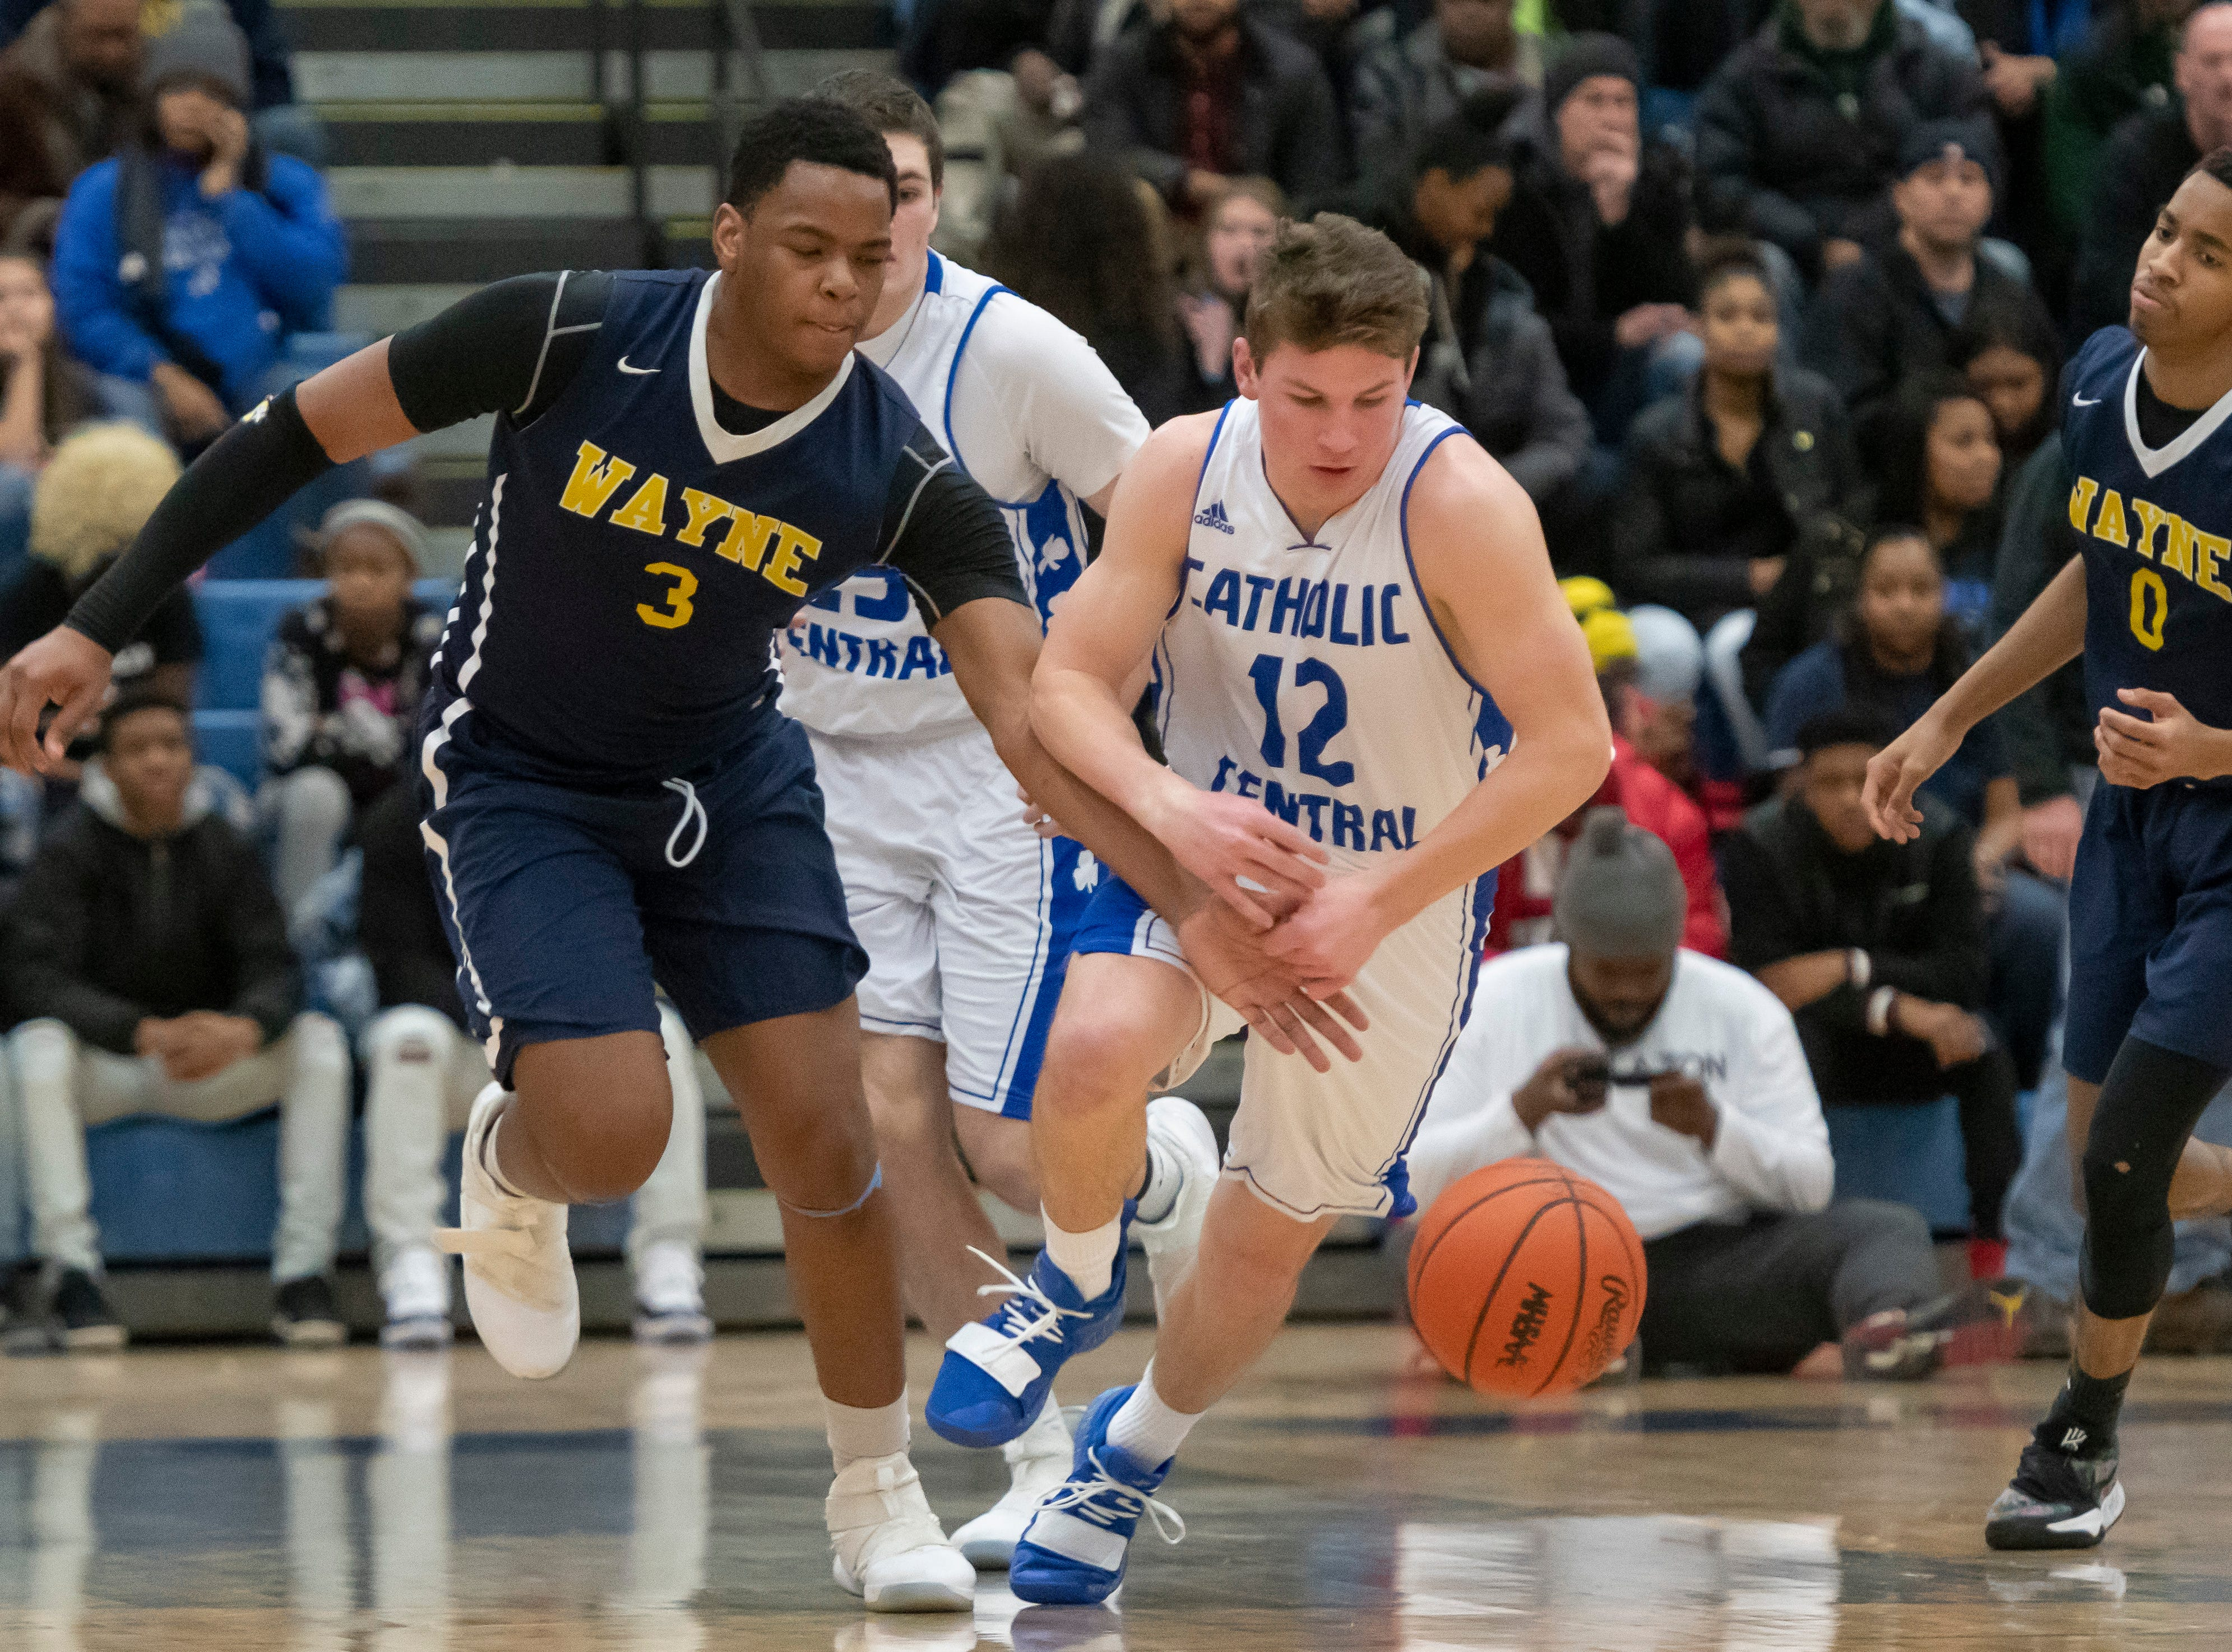 Wayne Memorial center Cartier Muse-Suber, left, tries to steal the ball away from Detroit Catholic Central's Keegan Koehler during the first half.